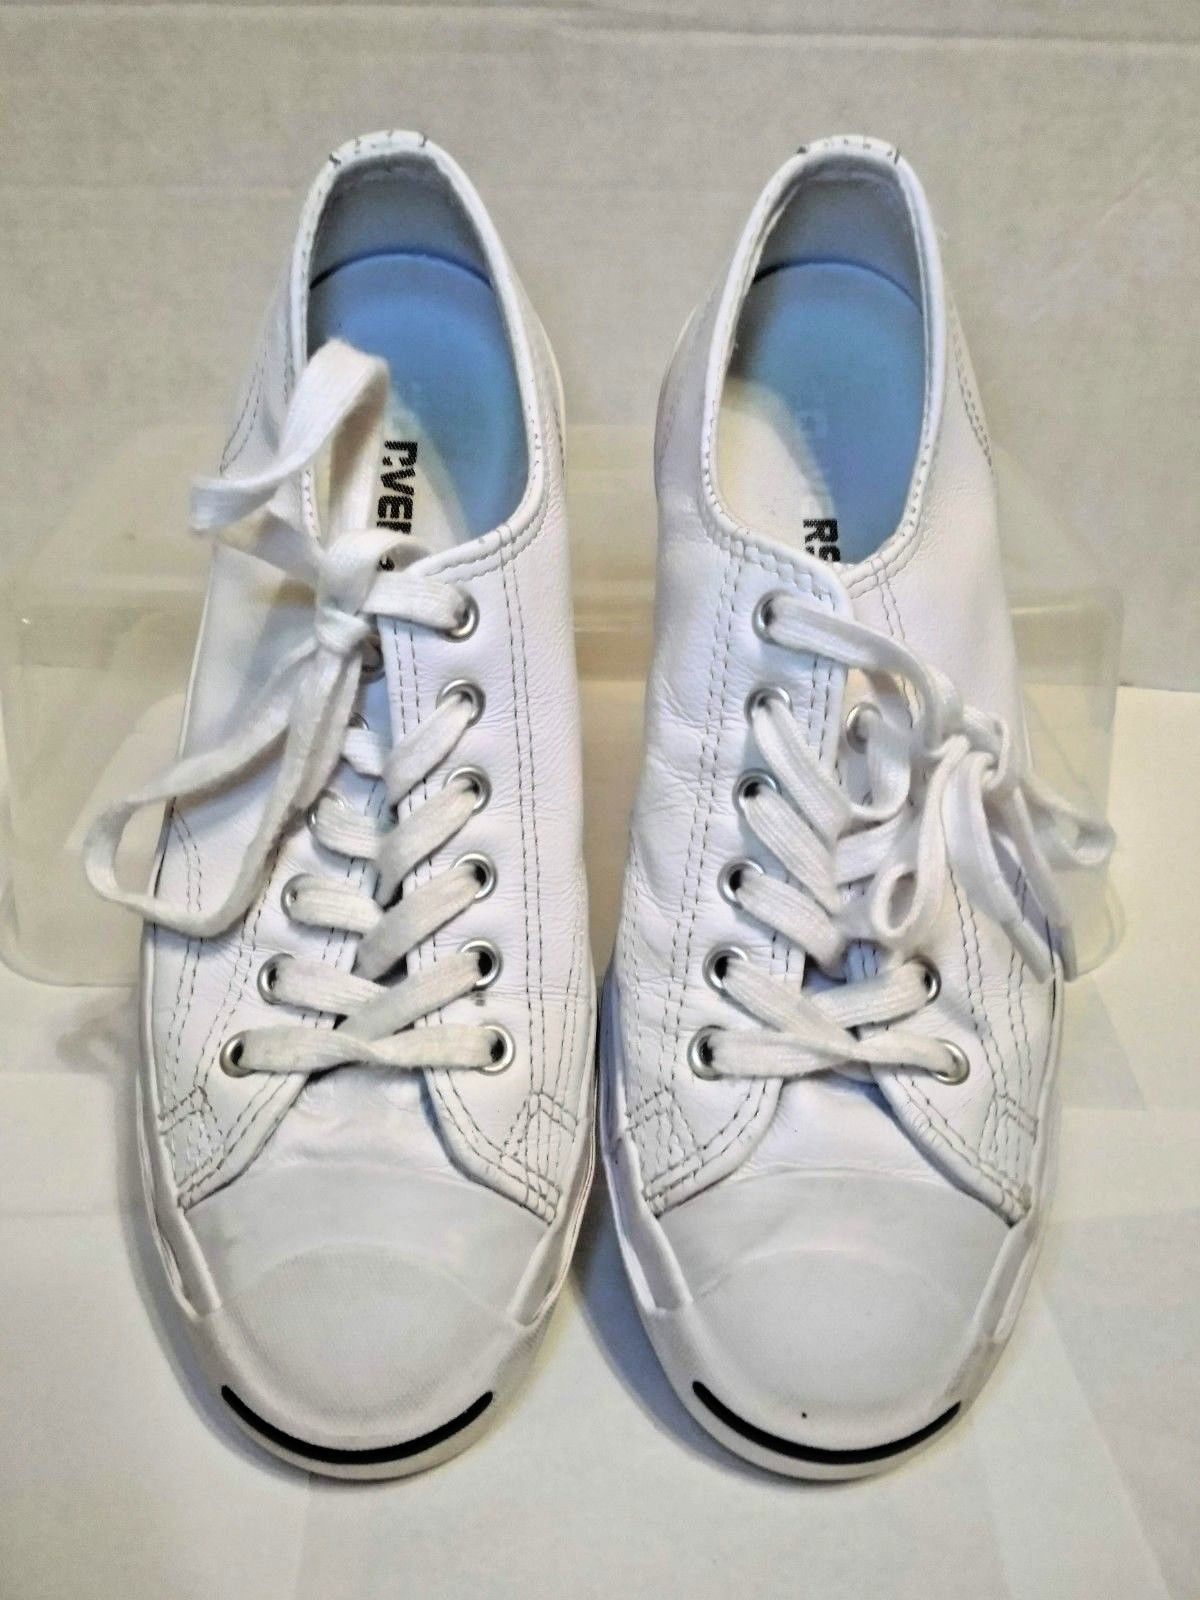 Converse Jack Purcell Low Top Women Size 8.5 and 50 similar items ed8fd2802